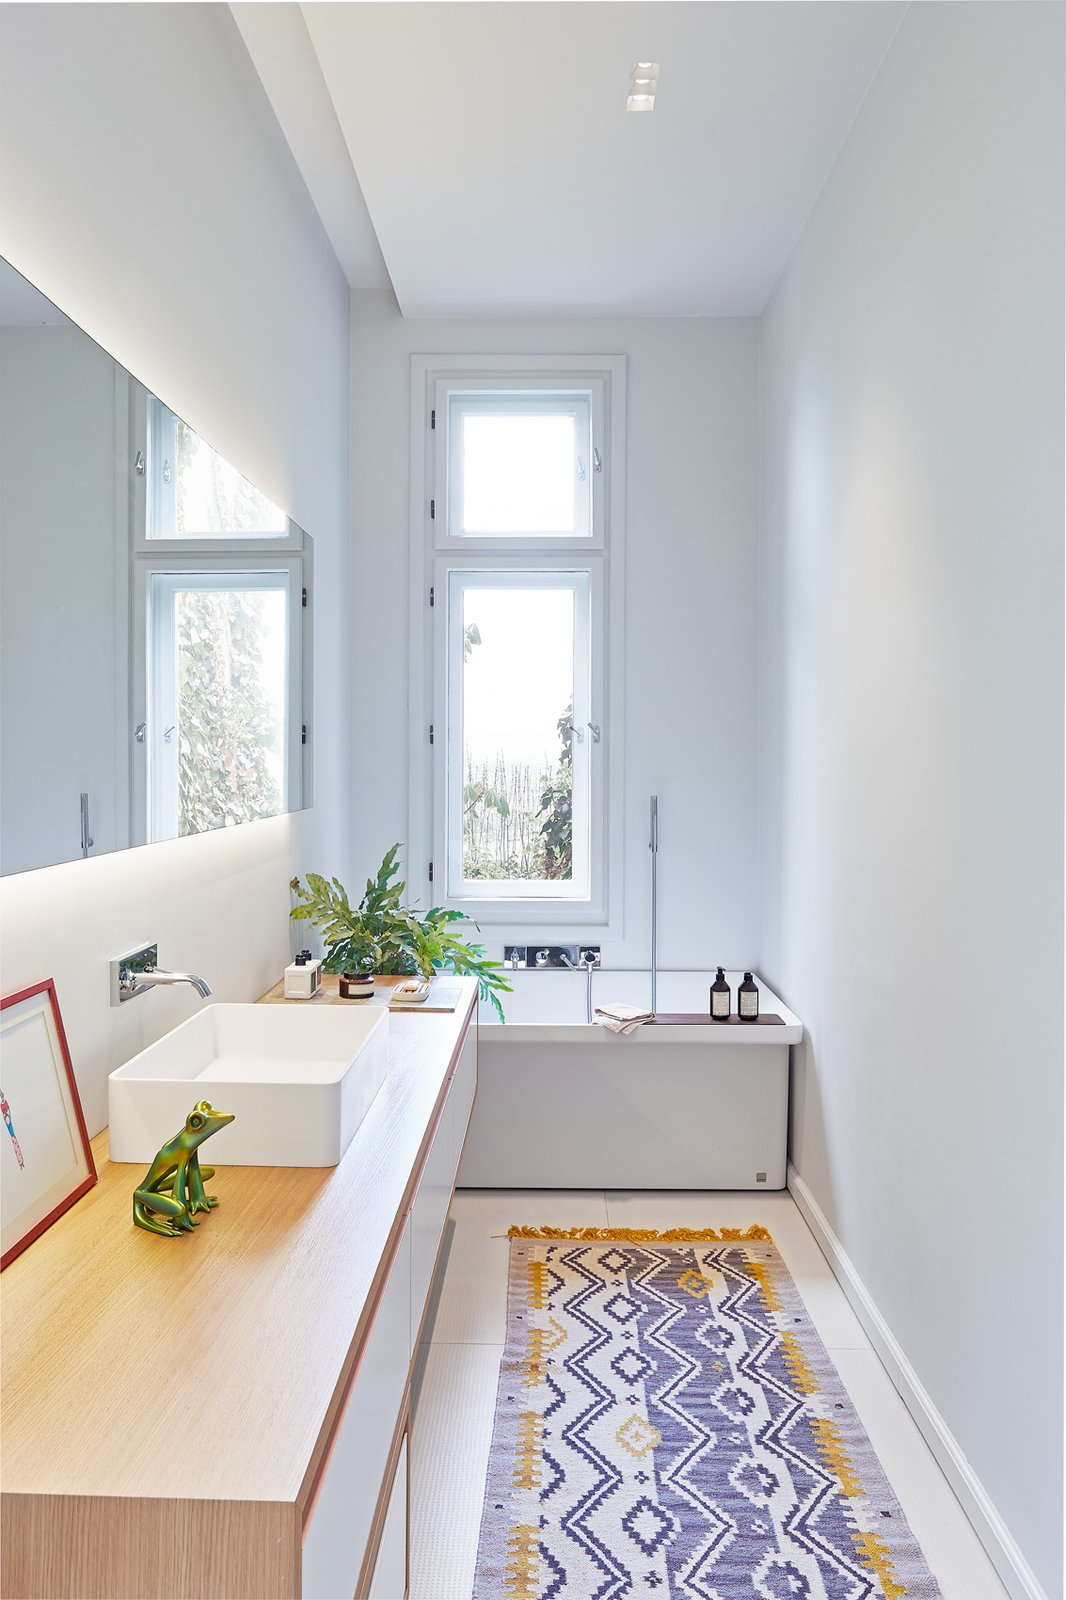 Bath, Wood, Rug, Vessel, Alcove, and Recessed Designed by Hungarian studio POSITION Collective, this 2,099-square-foot, two-story villa on Rezeda Street in the Pest area of Budapest is home to a family of four. Within, herringbone wood floors, geometric details on the ceilings, quirky lighting, furniture with interesting textures and colors, and framed artwork and photography come together to create a jaw-dropping contemporary home.  Best Bath Rug Wood Photos from A Family Villa in Budapest With Colorful, 1960s-Inspired Interiors